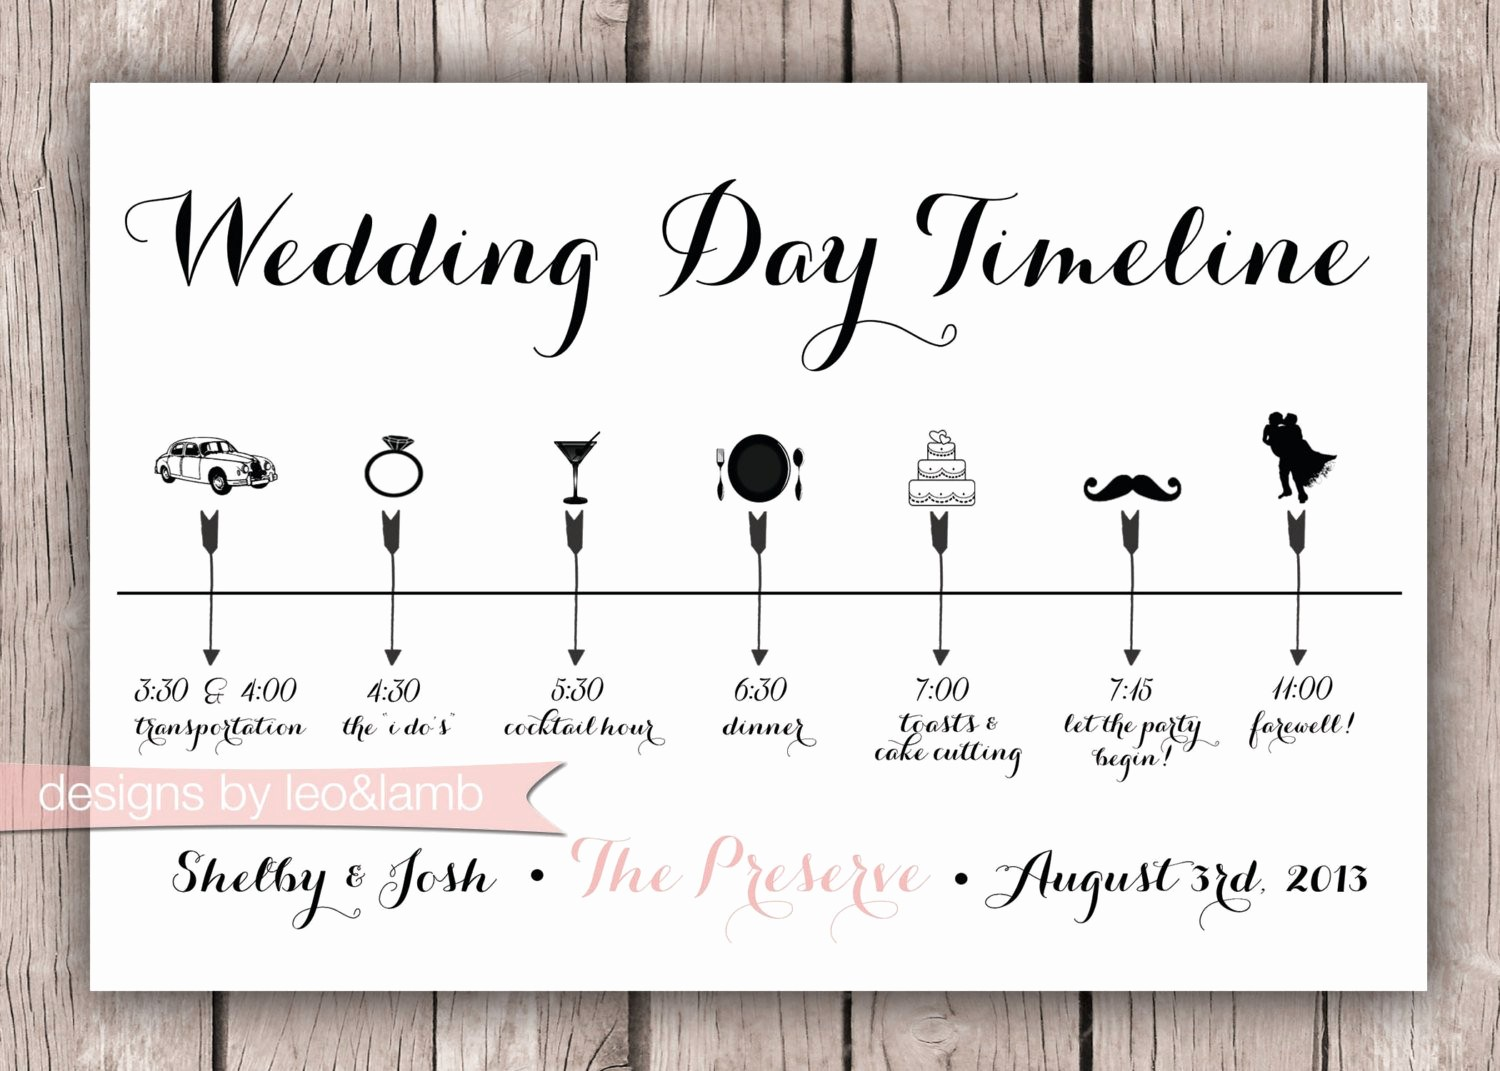 Wedding Day Timeline Template Free Beautiful Custom Wedding Timeline 5x7 Digital File